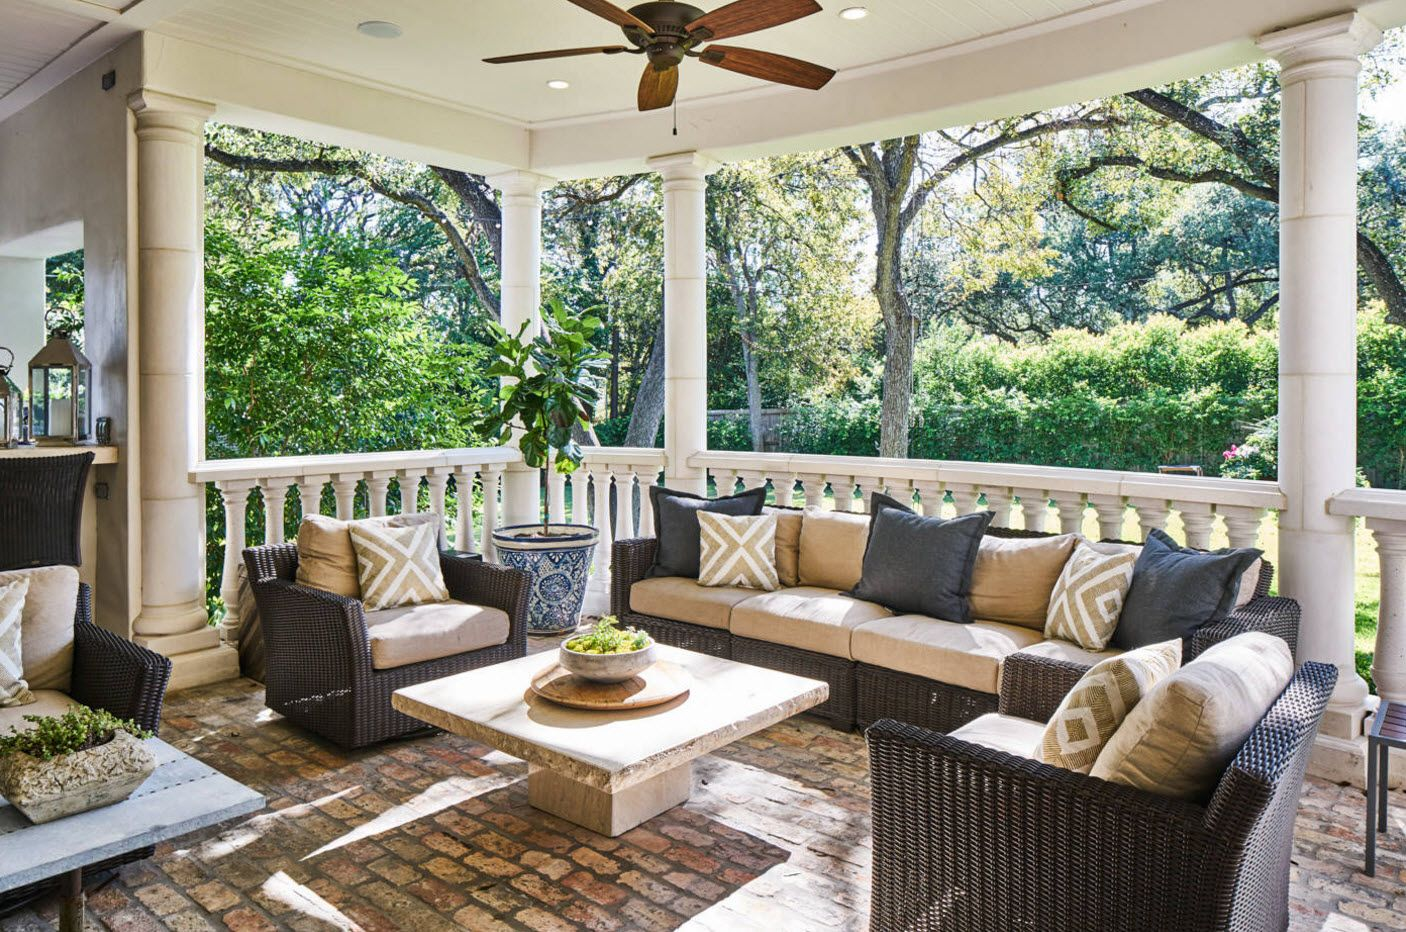 Country House Porch Decoration & Design Ideas. Nice patio in Mediterranean style